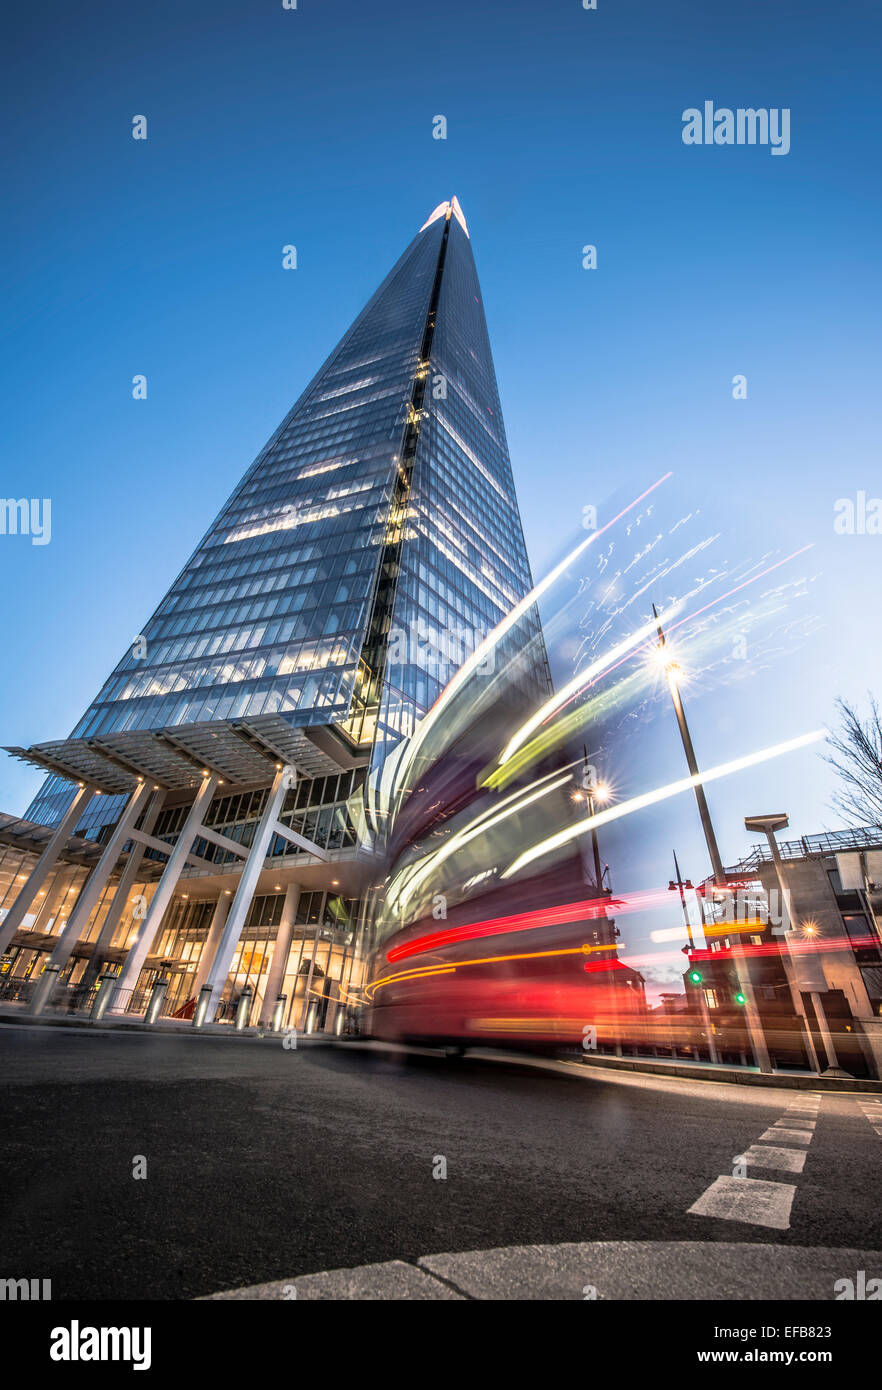 The Shard at dusk with bus moving past - Stock Image